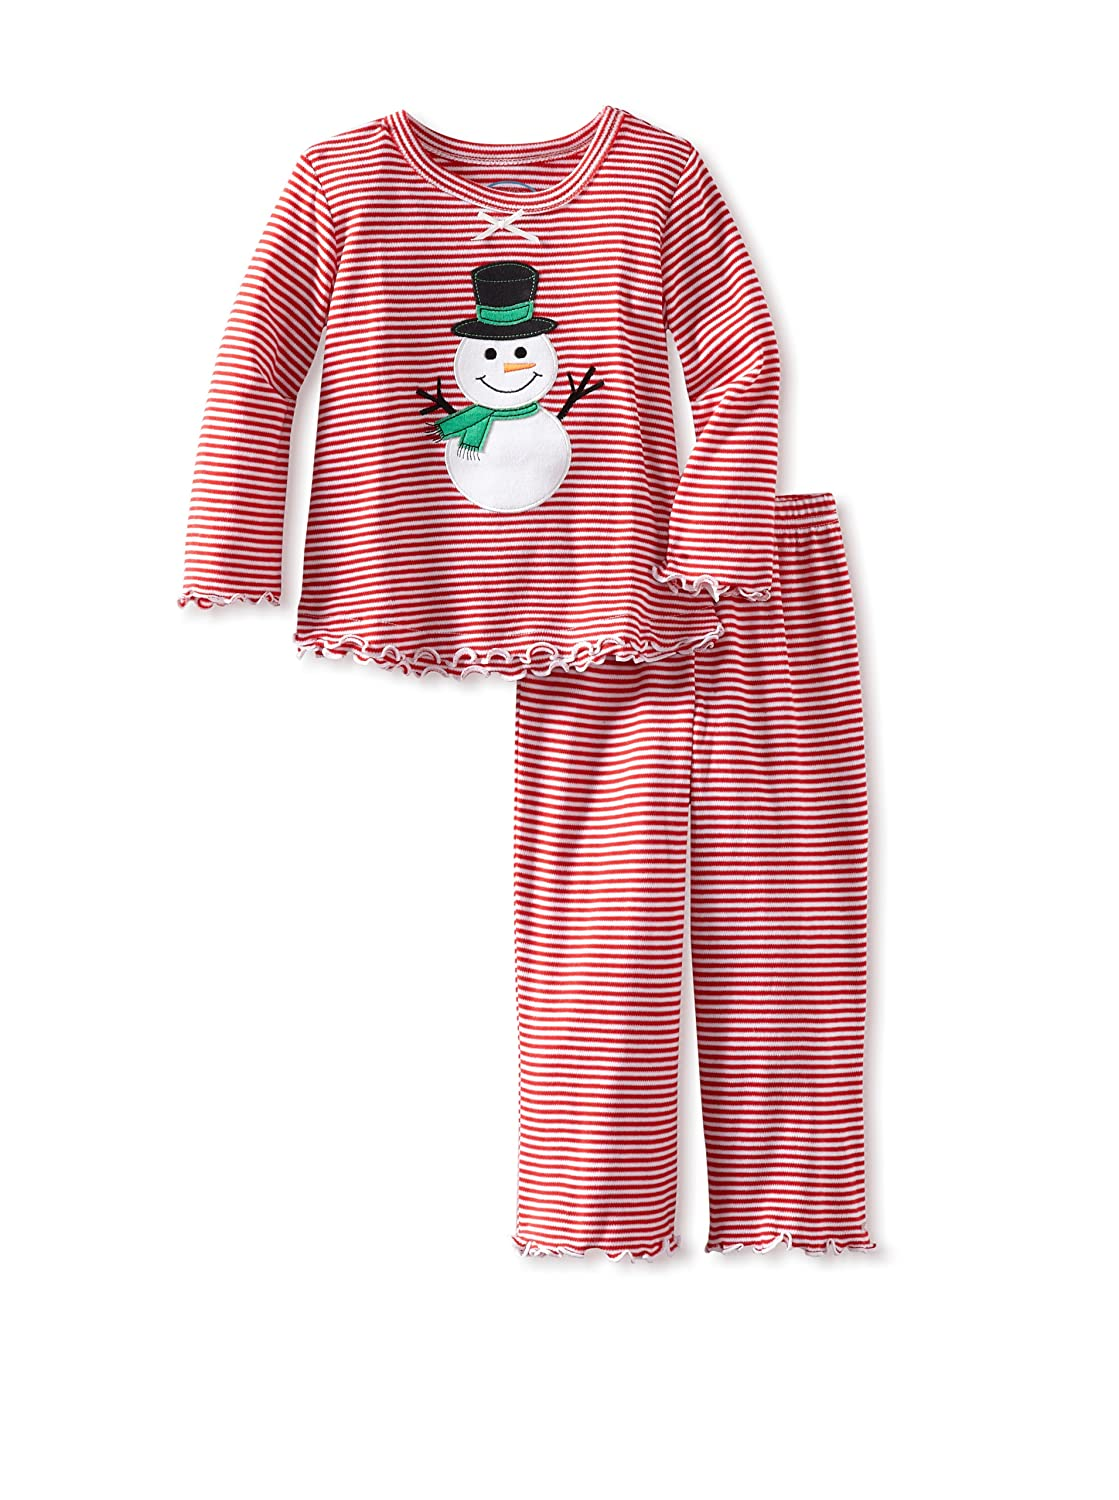 Kids Christmas Pajamas Boys Girls & Toddler Pajamas Moose Reindeer 2 Piece Pjs Set % Cotton (12 Months Years) from $ 19 99 Prime. 4 out of 5 stars Family Feeling. Striped Boys Girls 2 Piece Christmas Pajamas Set % Cotton Pjs. from $ 11 99 Prime. out of 5 stars Vicbovo.